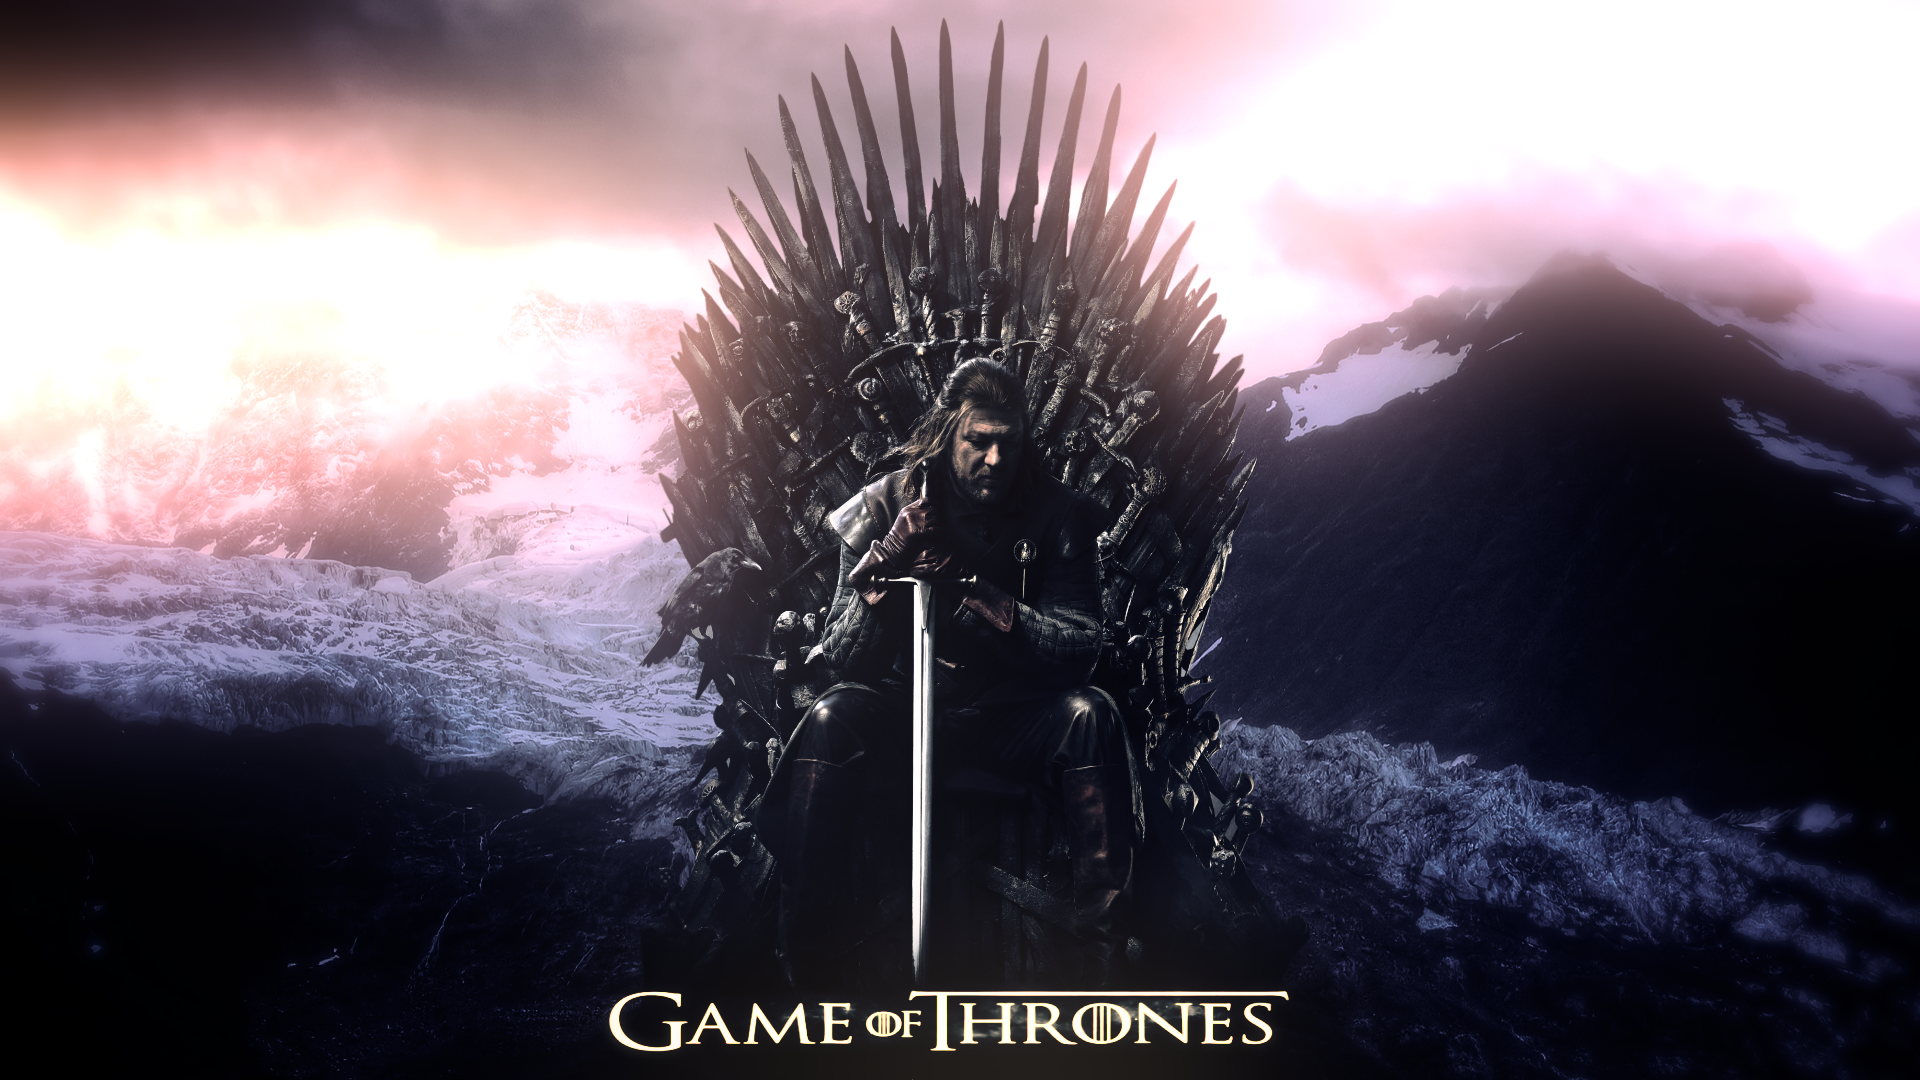 High Resolution Great Game of Thrones Backgrounds Full Size